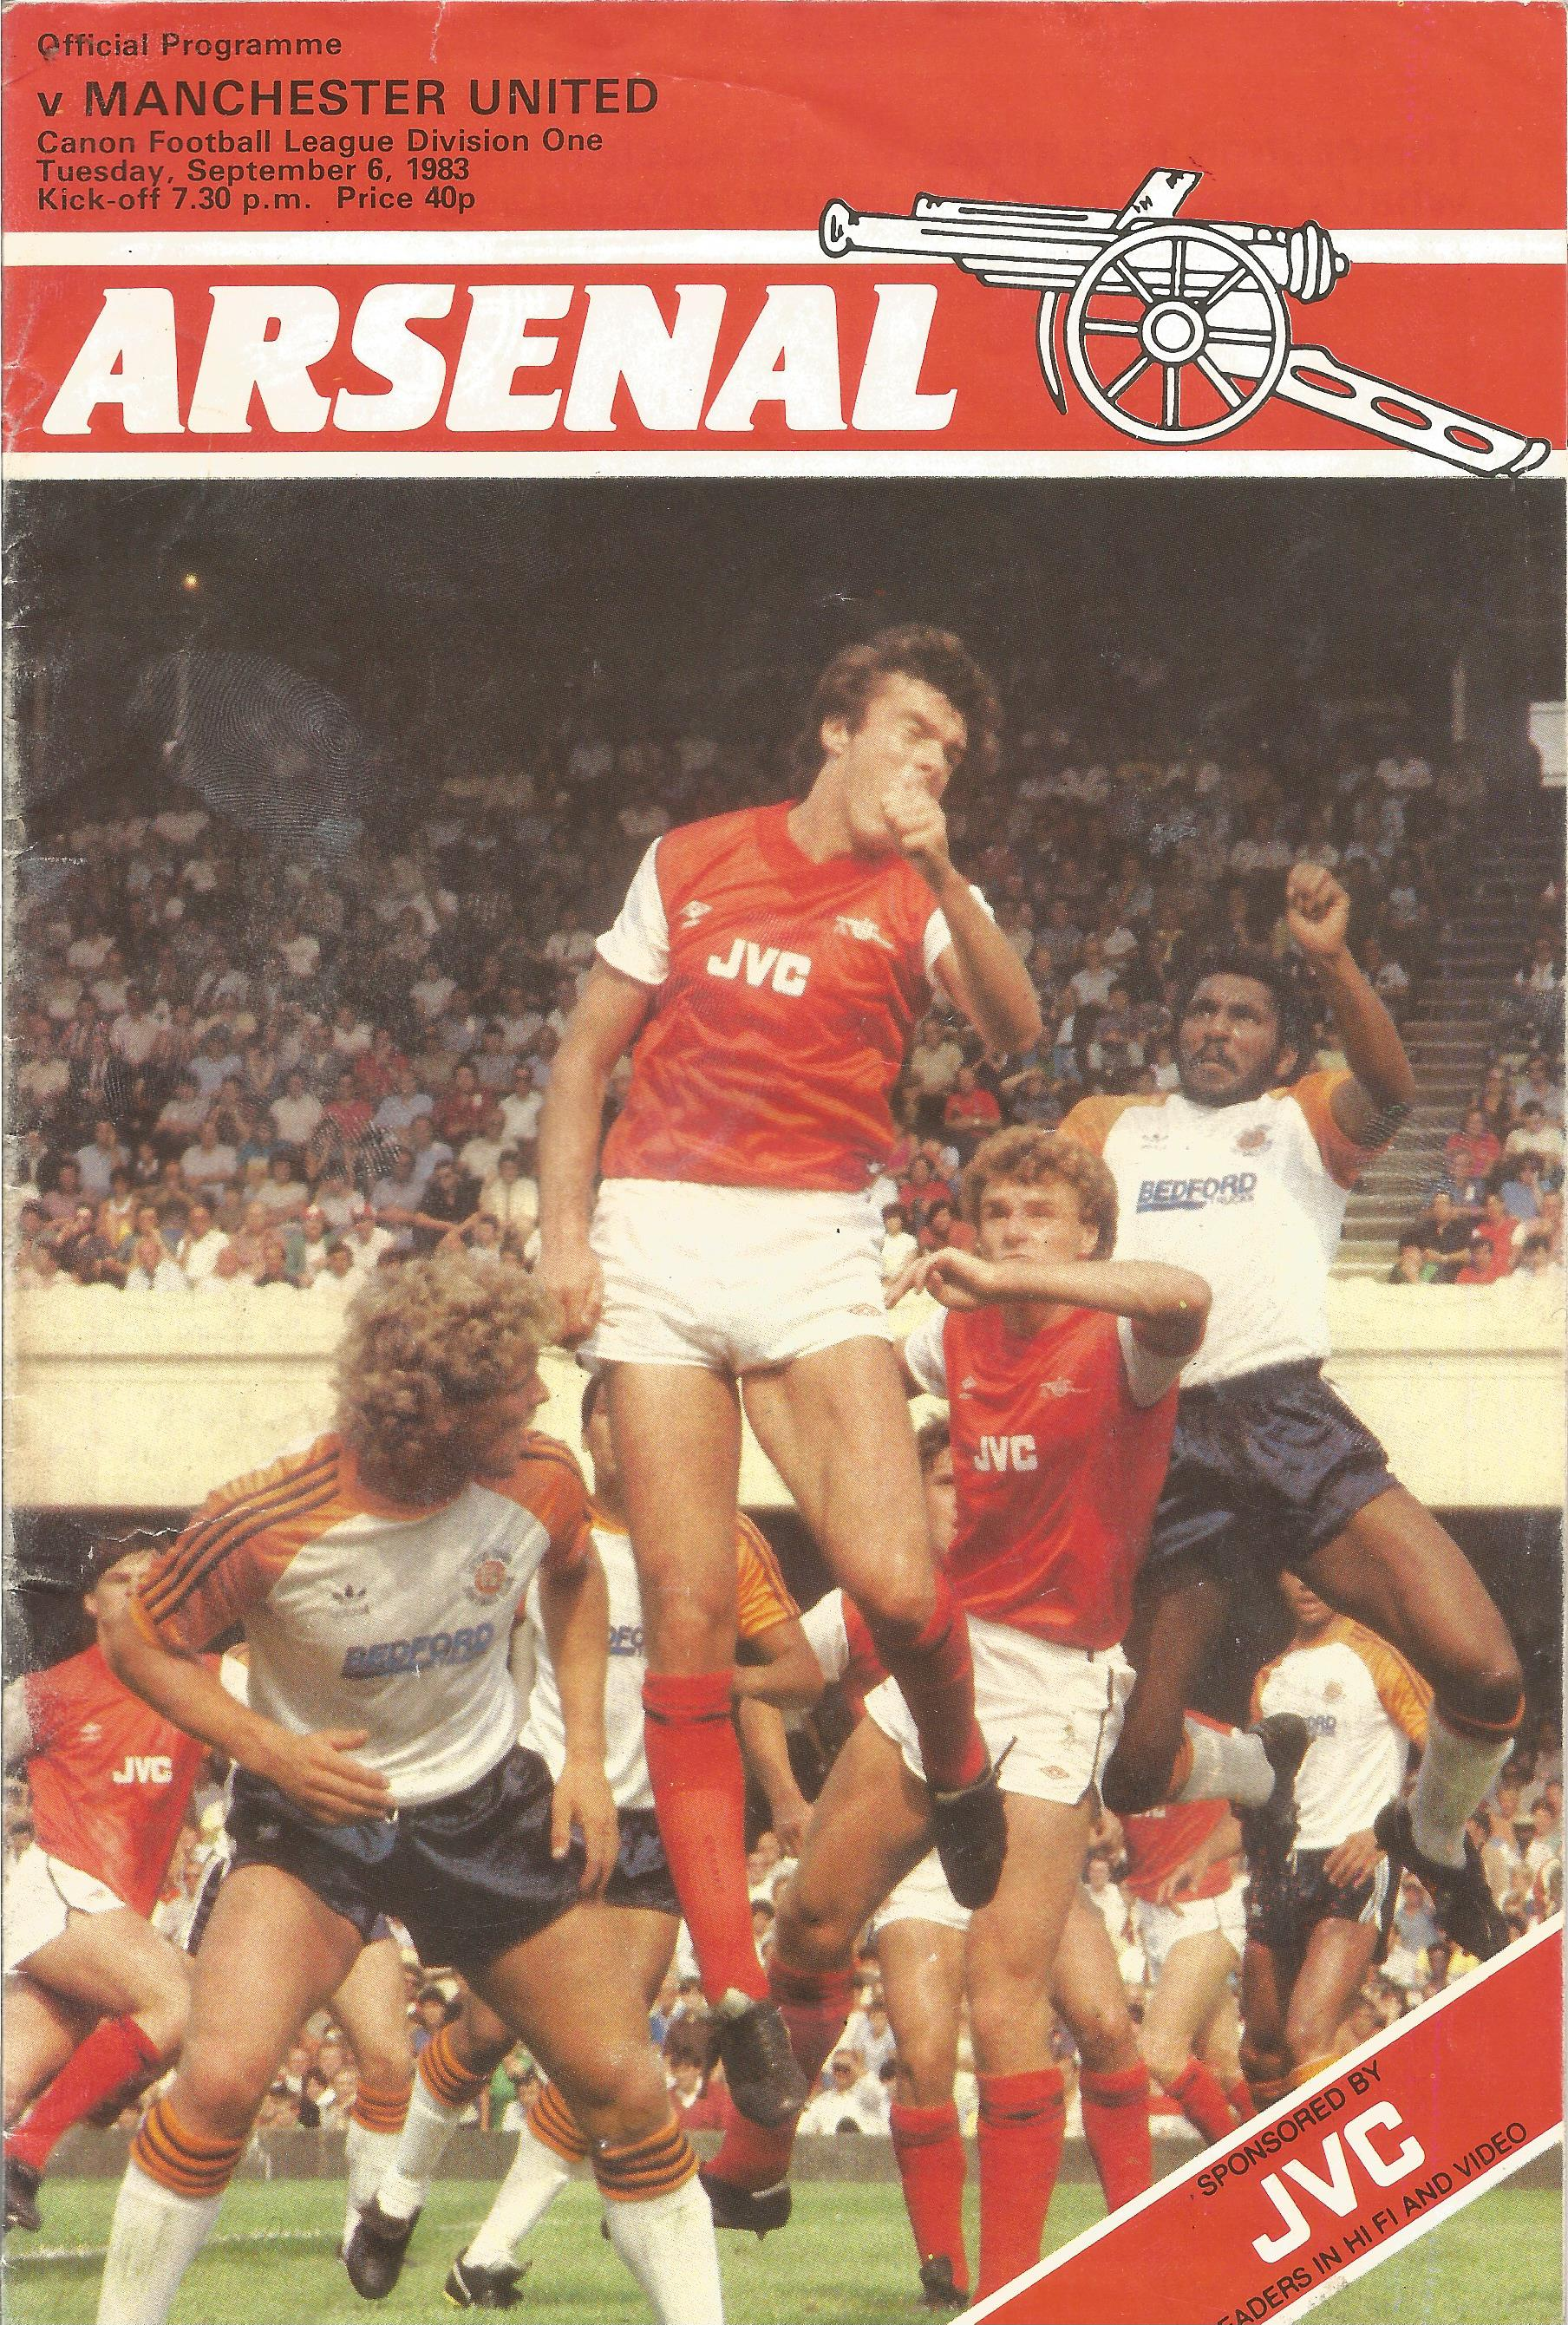 Arsenal. A Collection of 4 matchday programmes. From 1950, 1969, 1969 and 1983. some showing signs - Image 3 of 5